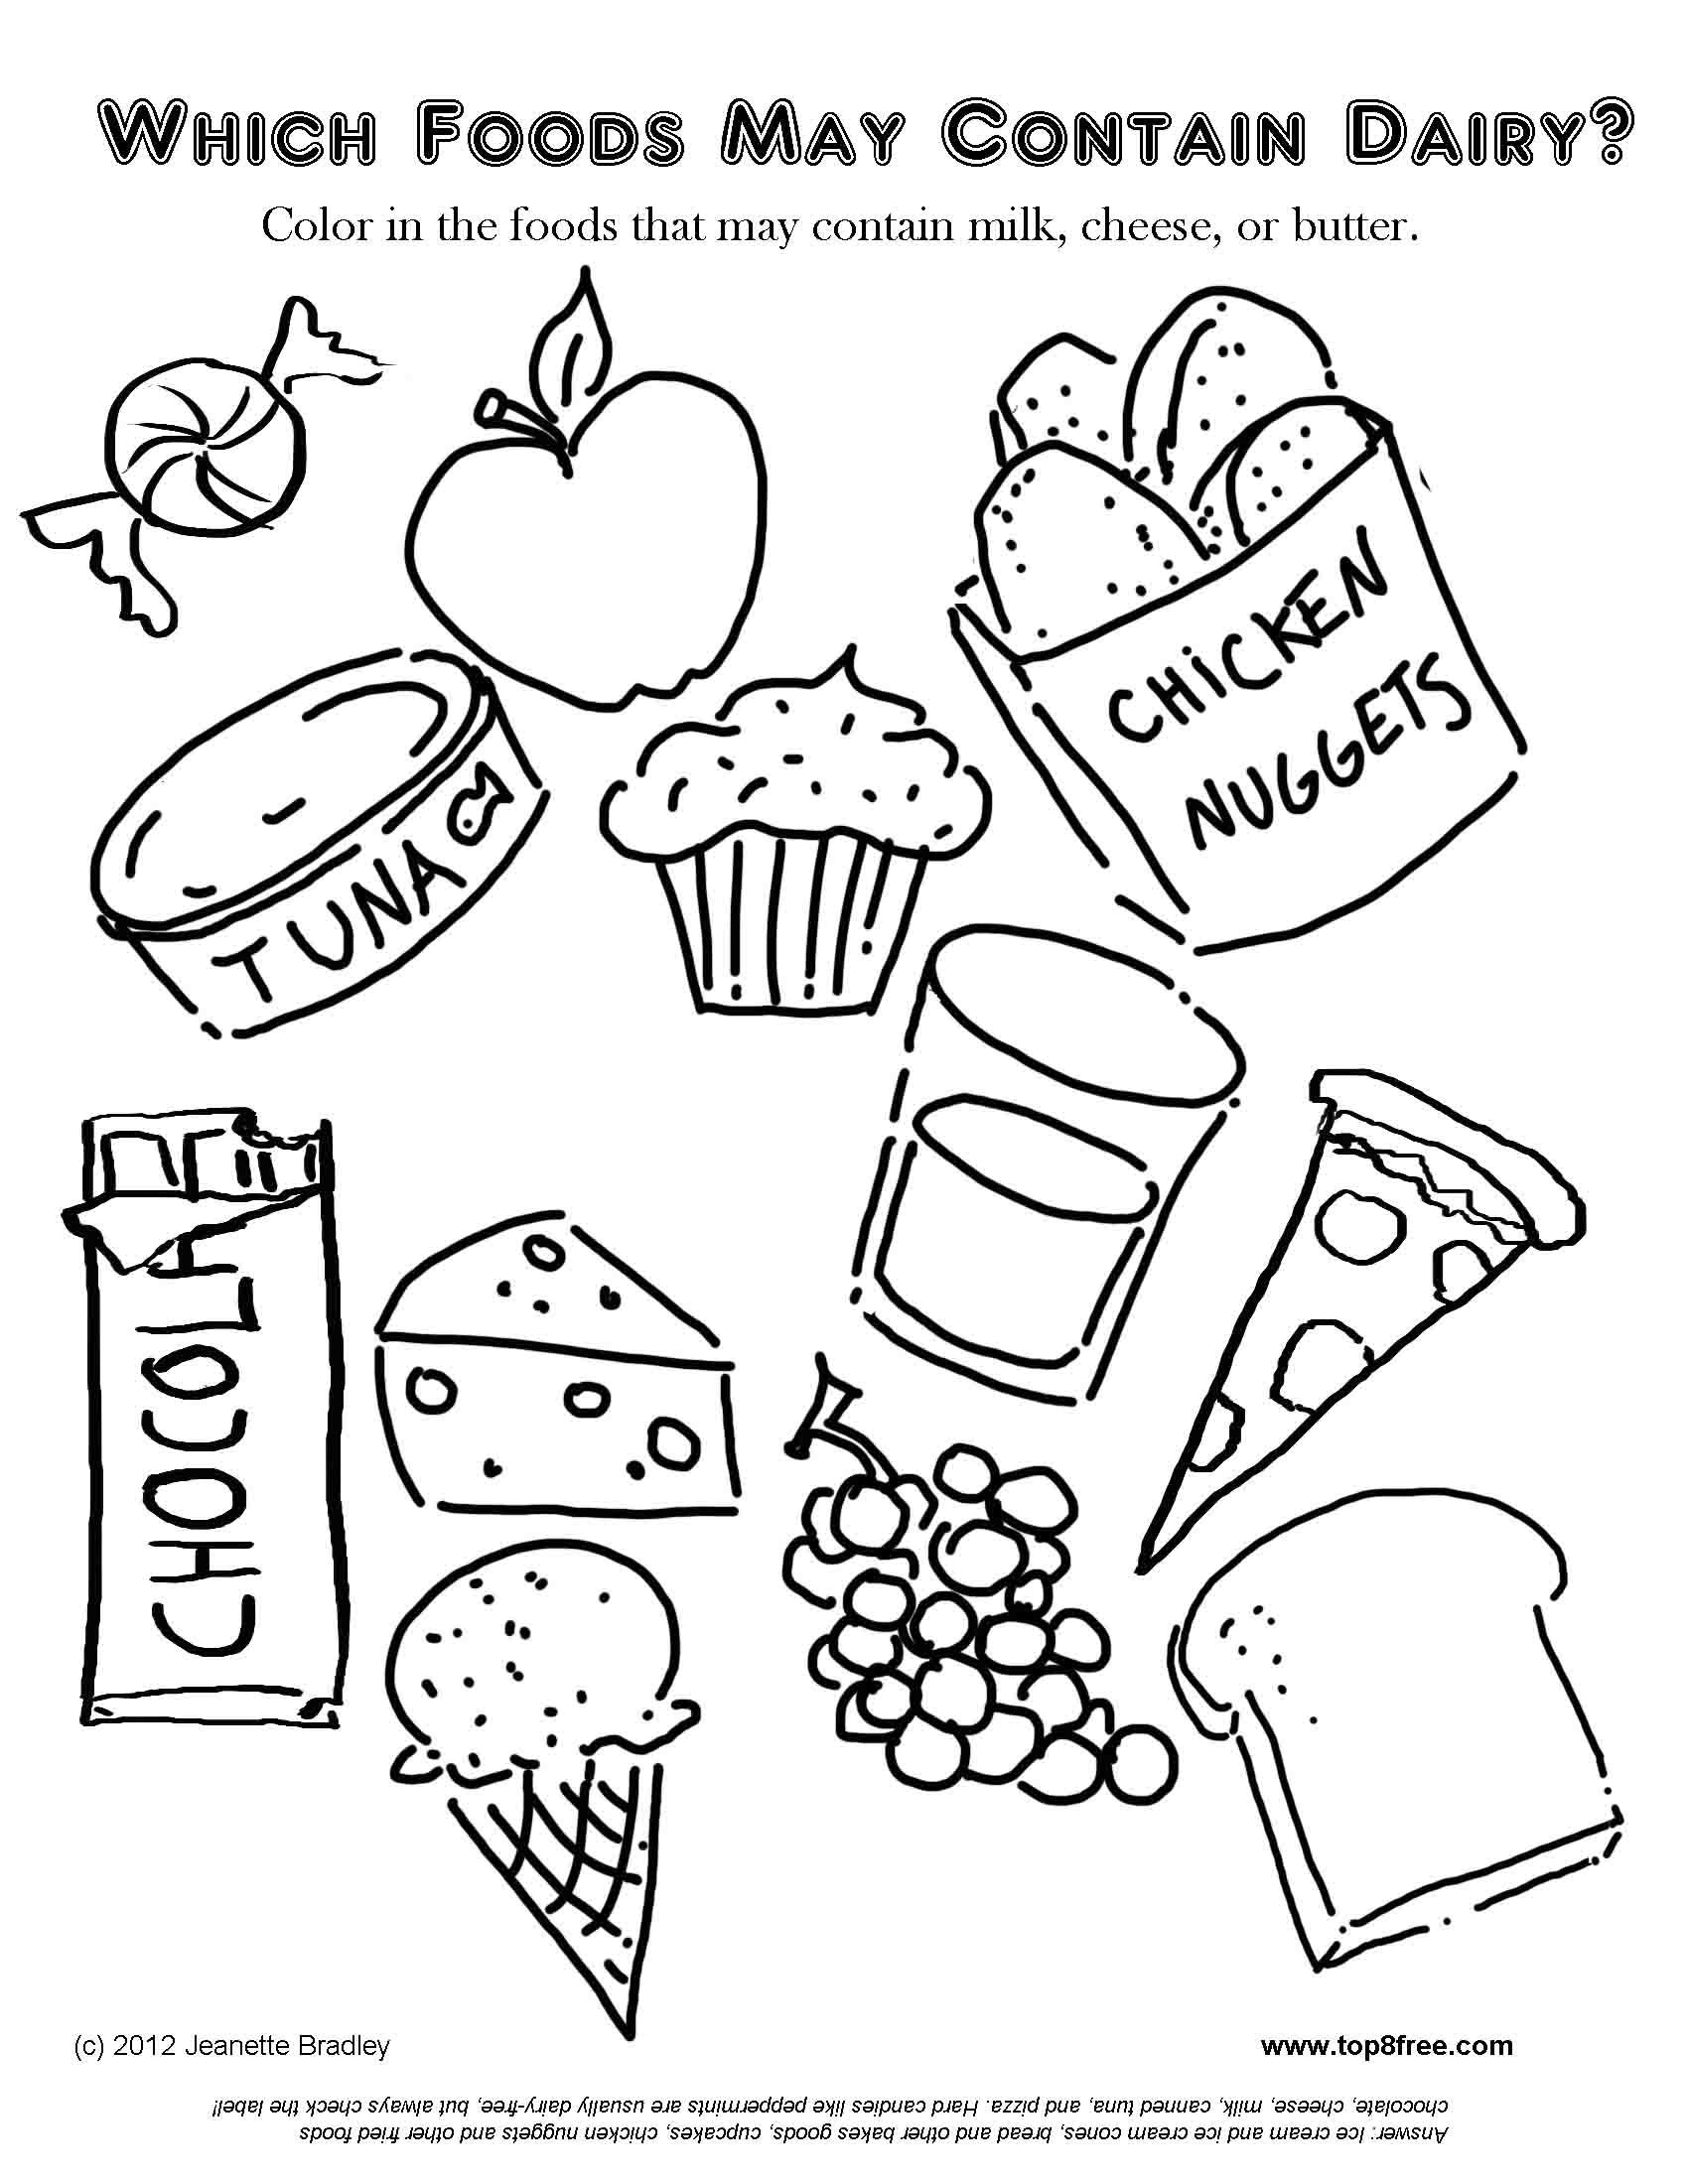 Dairy Allergy Coloring Page Food Coloring Pages Free Kids Coloring Pages Coloring Pages For Kids